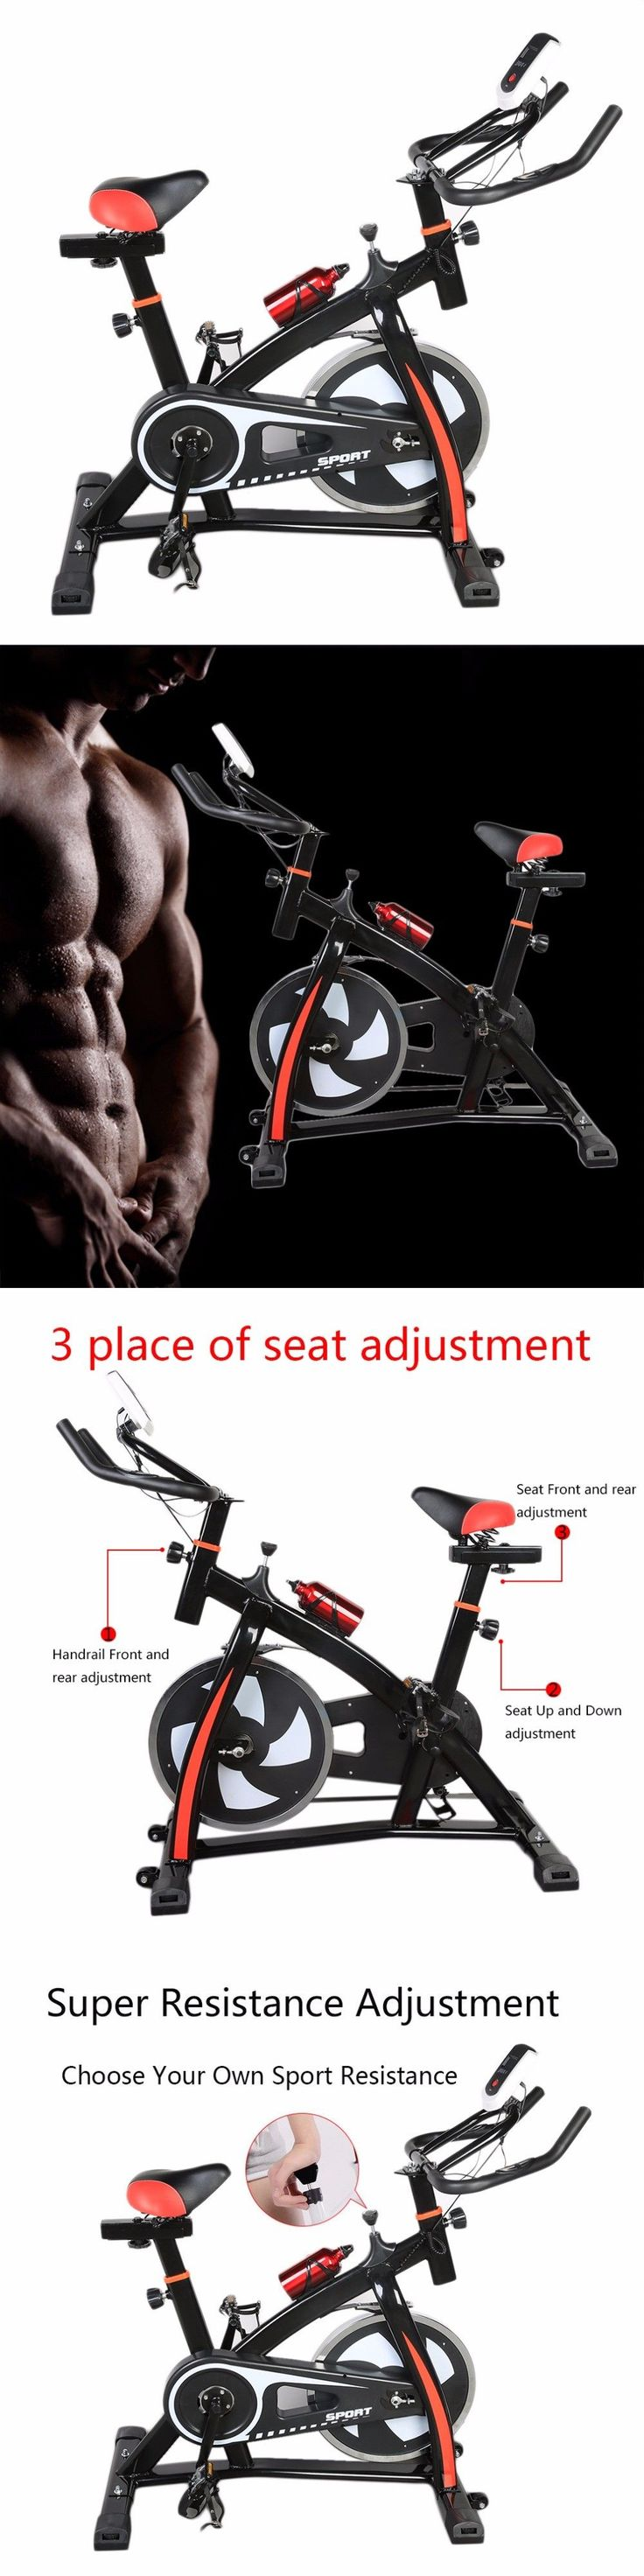 Exercise Bikes 58102: Hewolf Pro-Stationary Exercise Bicycle-Indoor Cycling Cardio Workout - Zh914300 -> BUY IT NOW ONLY: $169.95 on eBay!